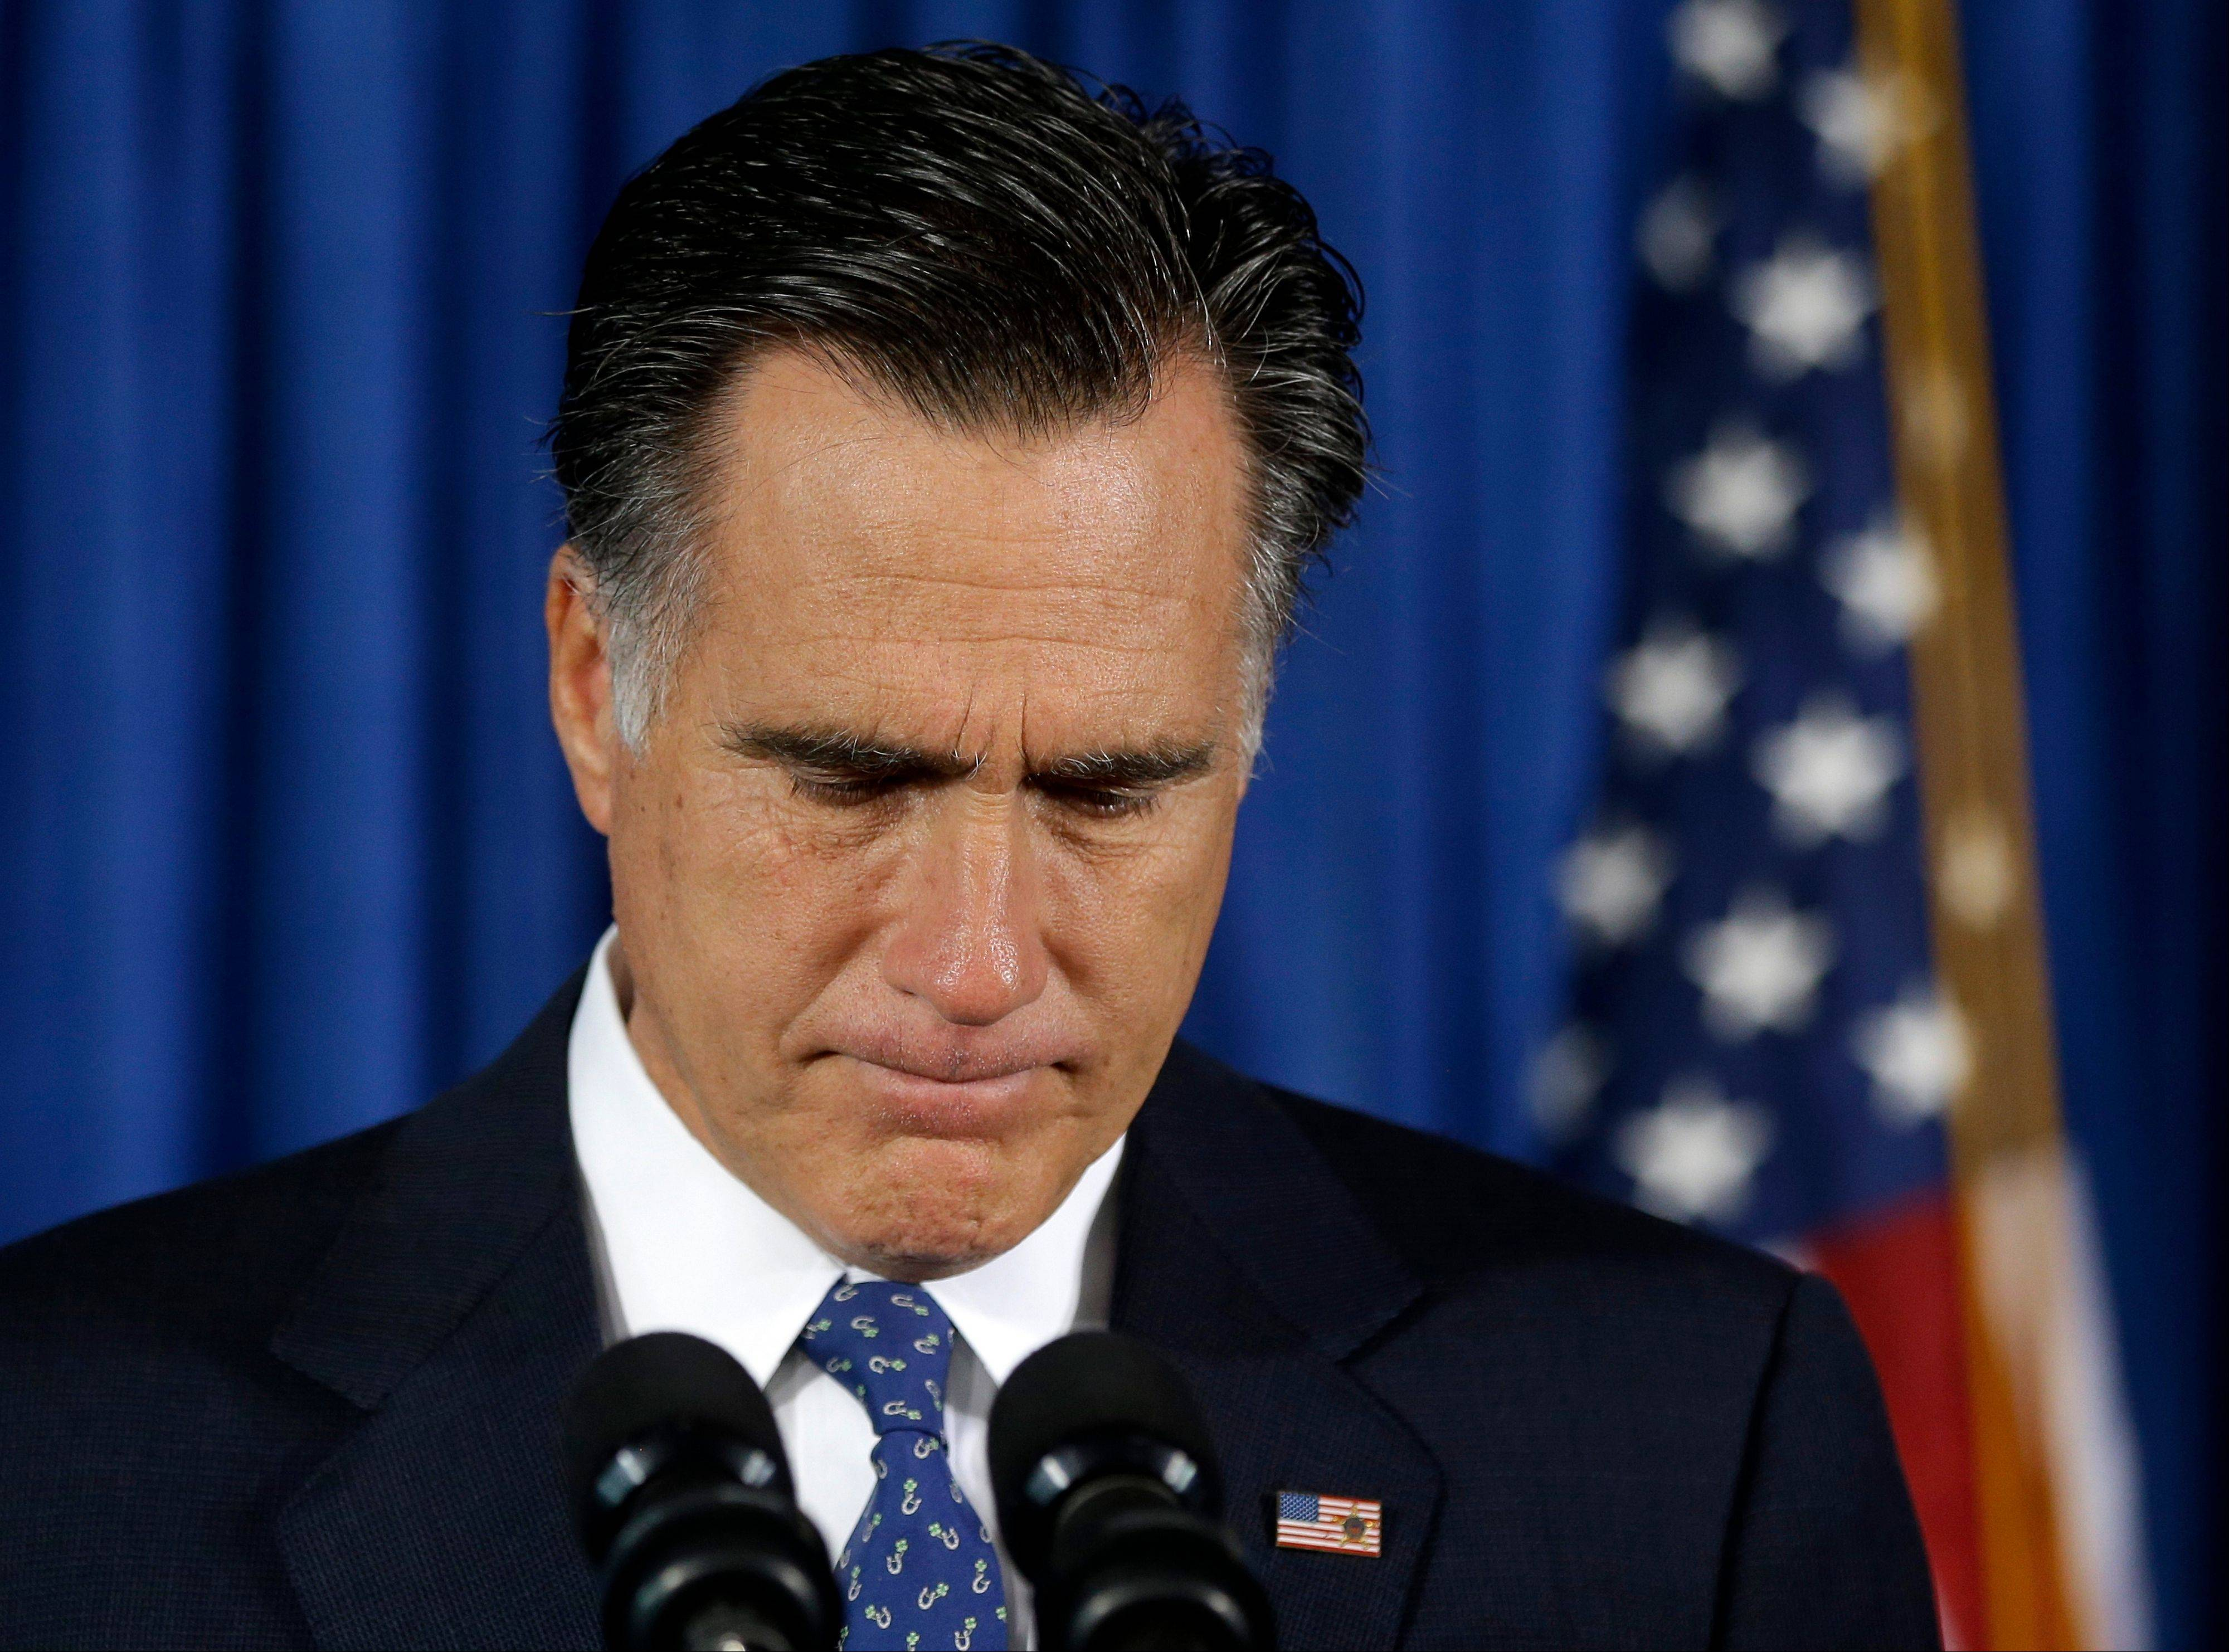 Republican presidential candidate, former Massachusetts Gov. Mitt Romney makes comments on the killing of U.S. embassy officials in Benghazi, Libya, while speaking in Jacksonville, Fla., Wednesday, Sept. 12, 2012.